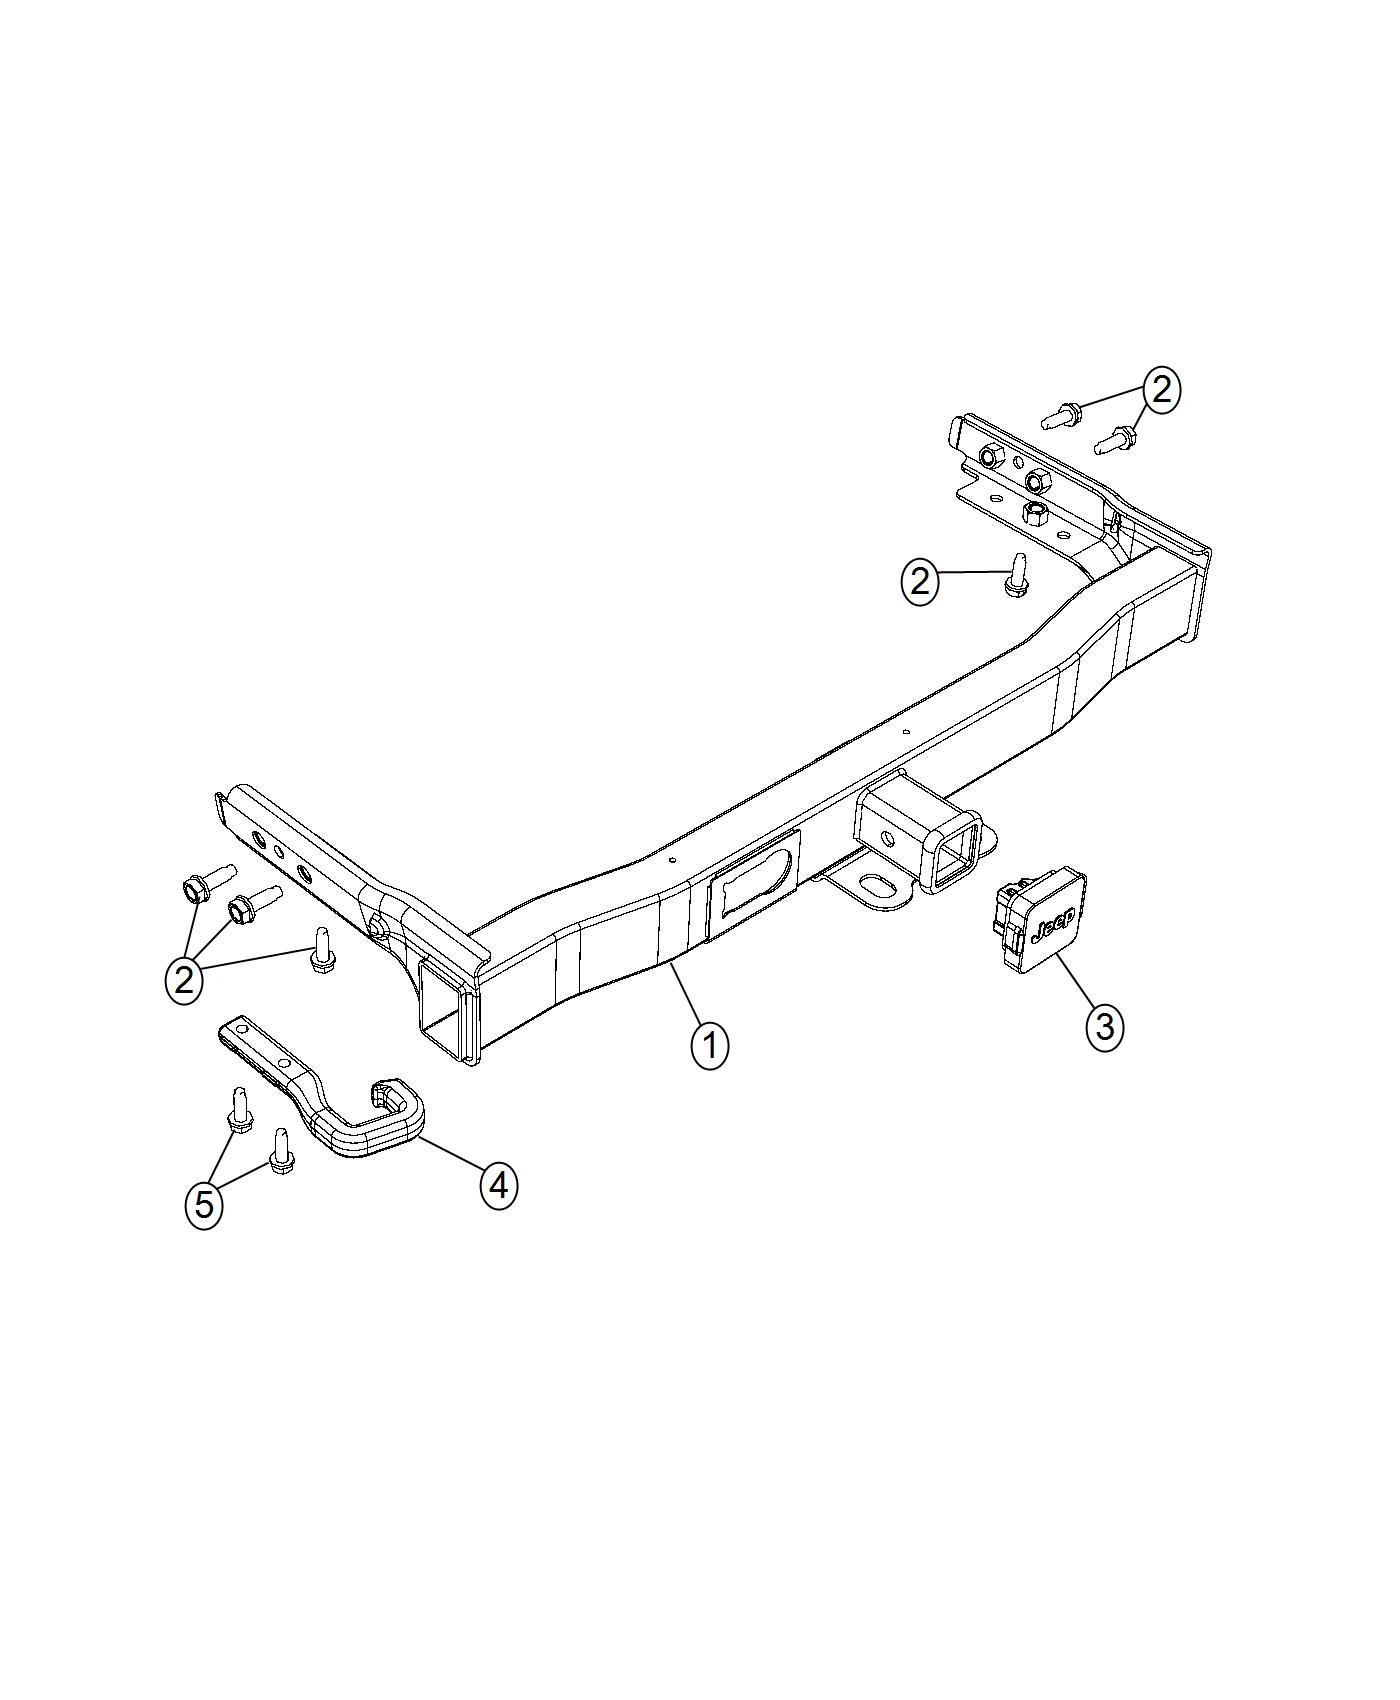 2014 Jeep Cherokee Hitch. Trailer. [class iii receiver